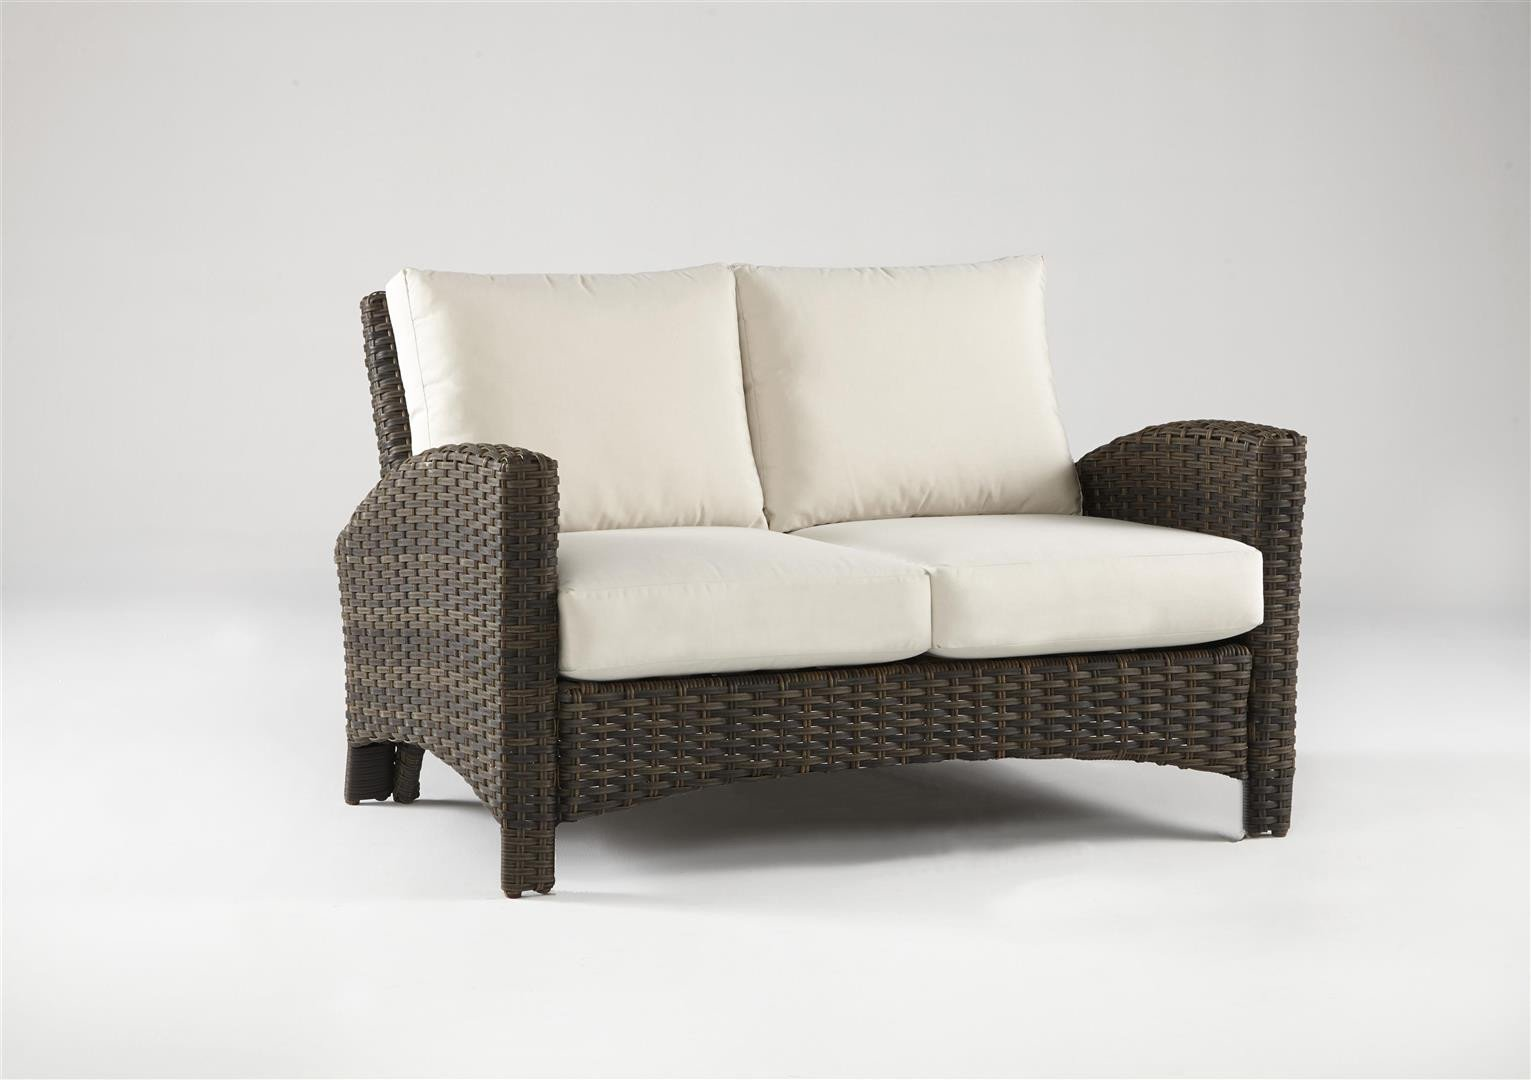 South Sea Rattan South Sea Rattan Panama Loveseat Loveseat - Rattan Imports